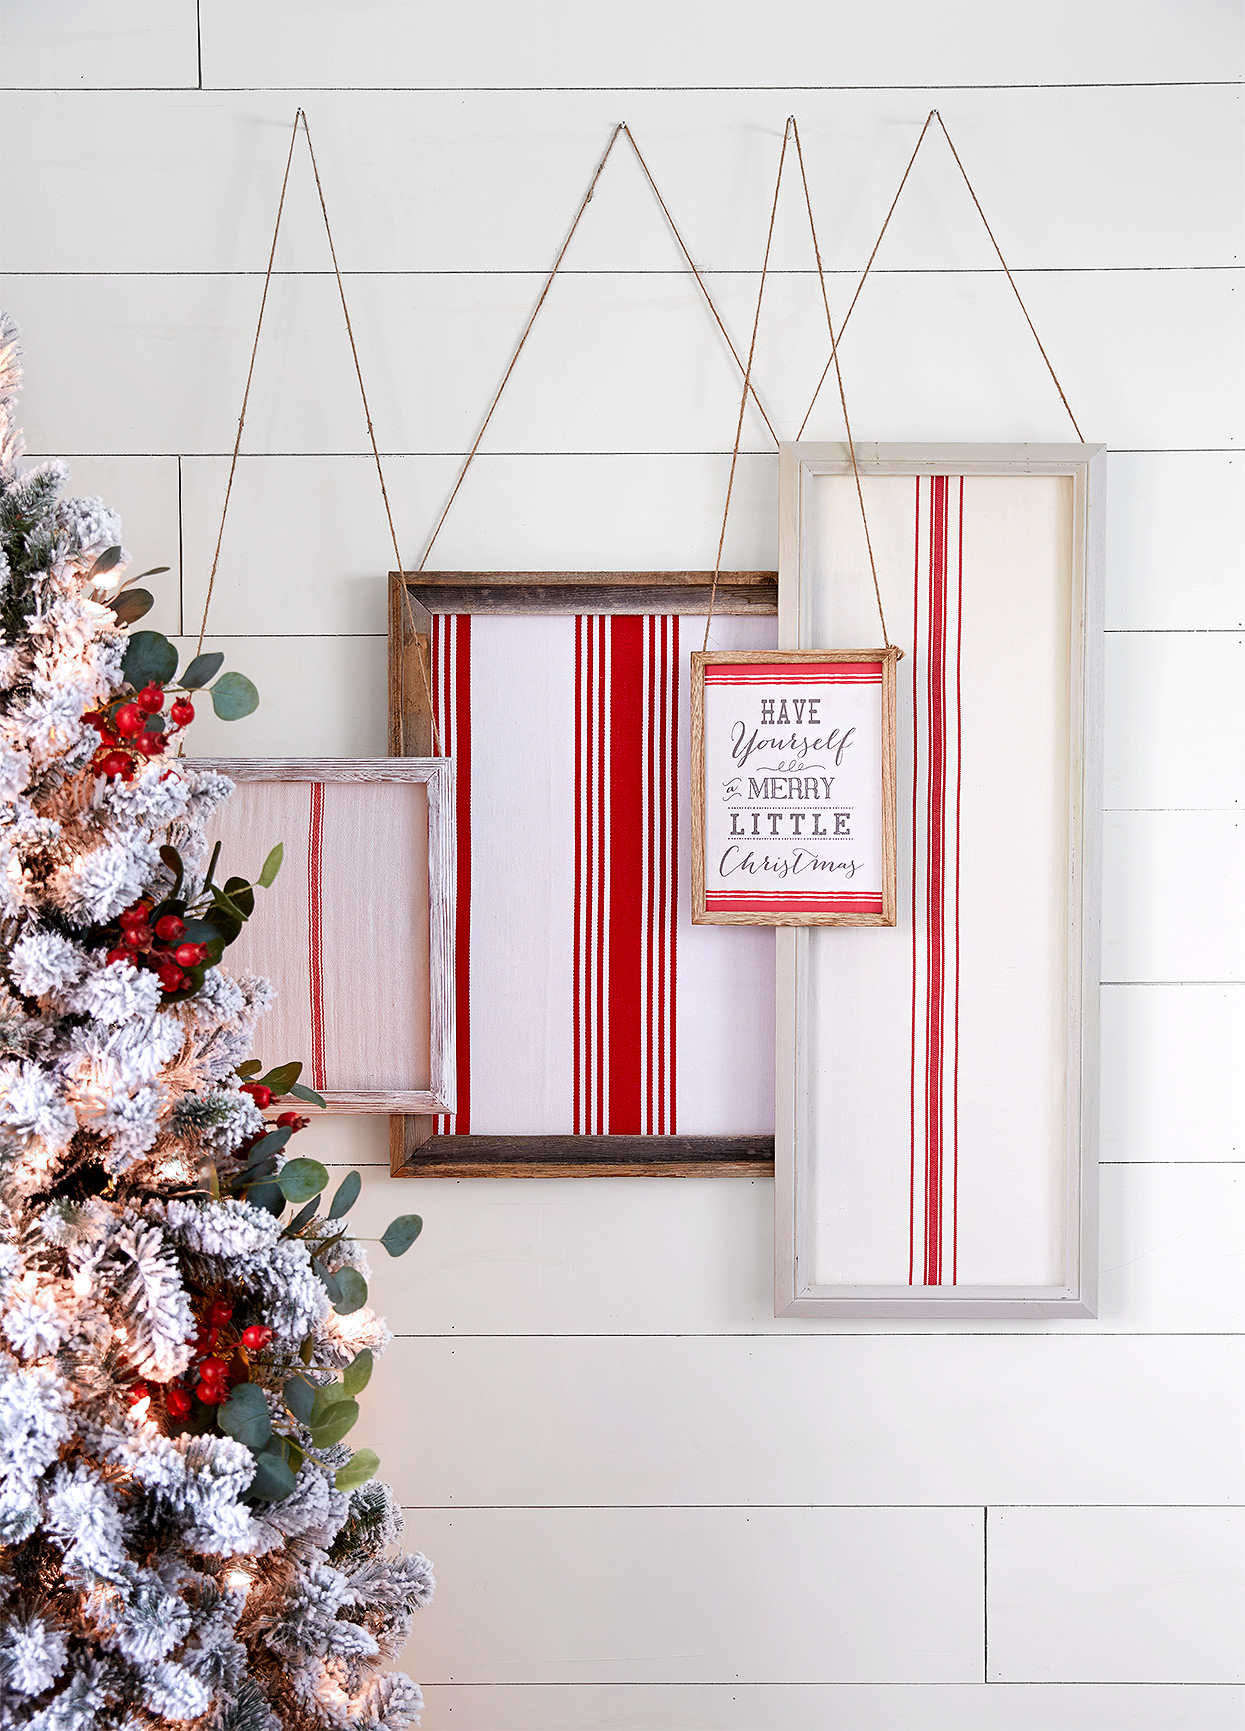 Have a Merry Little Christmas overlapping hanging pictures